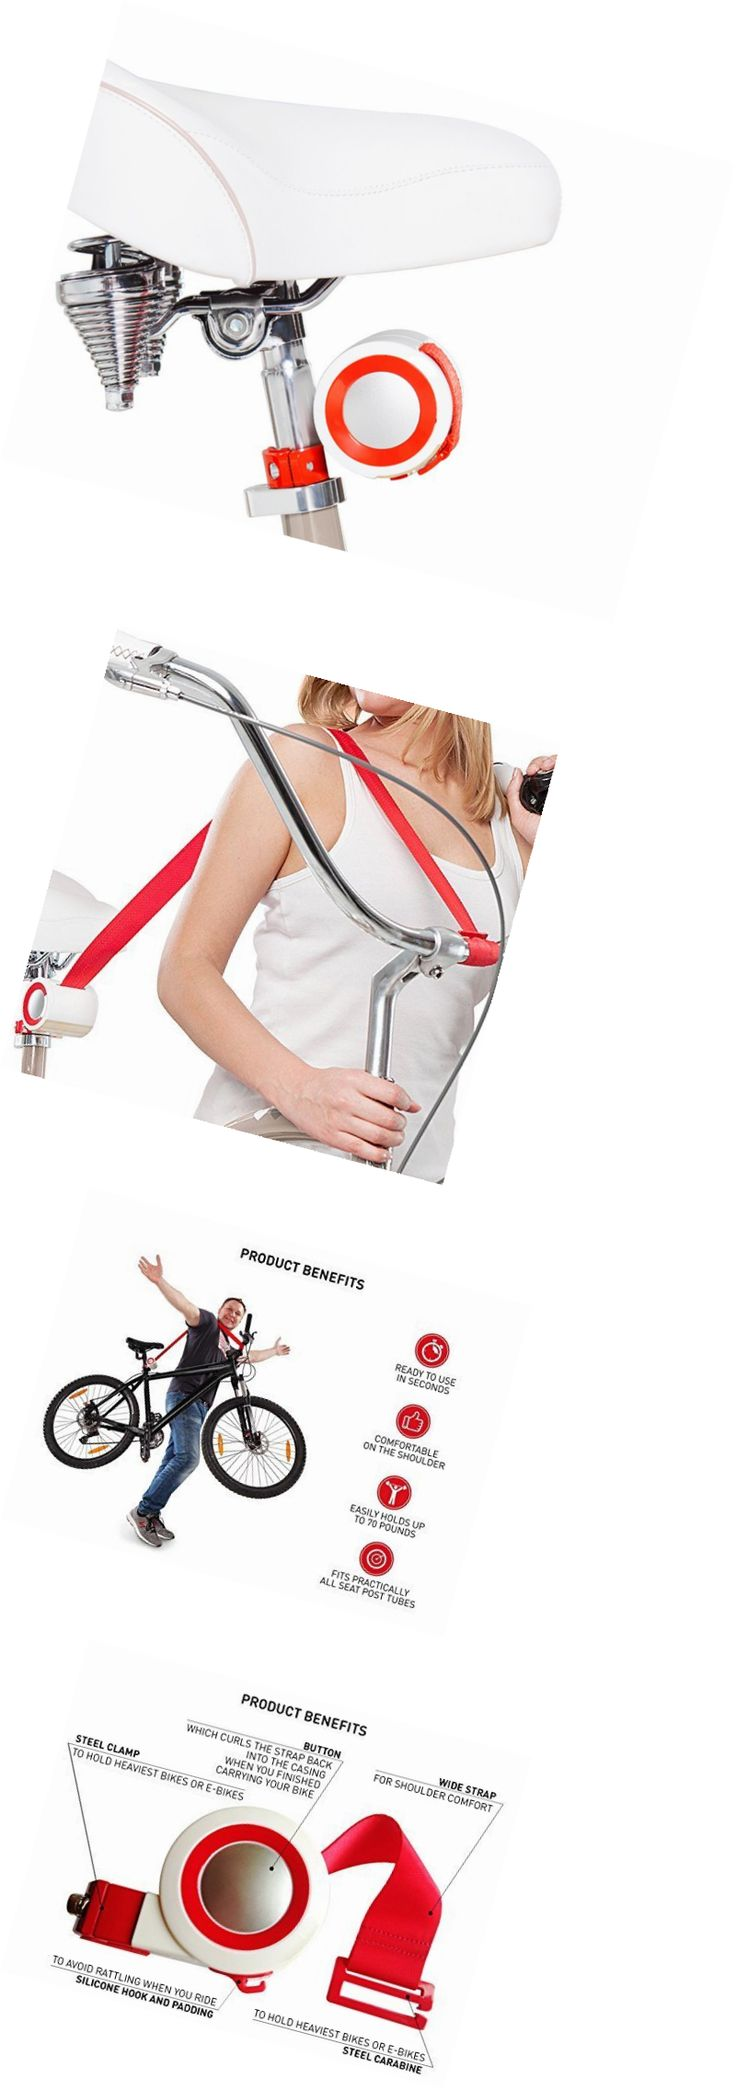 Bicycle Transport Cases and Bags 177835: Bike Lift And Carry: A Strong Retractable Strap To Carry Your Bike Or E-Bike Ups -> BUY IT NOW ONLY: $54.62 on eBay!